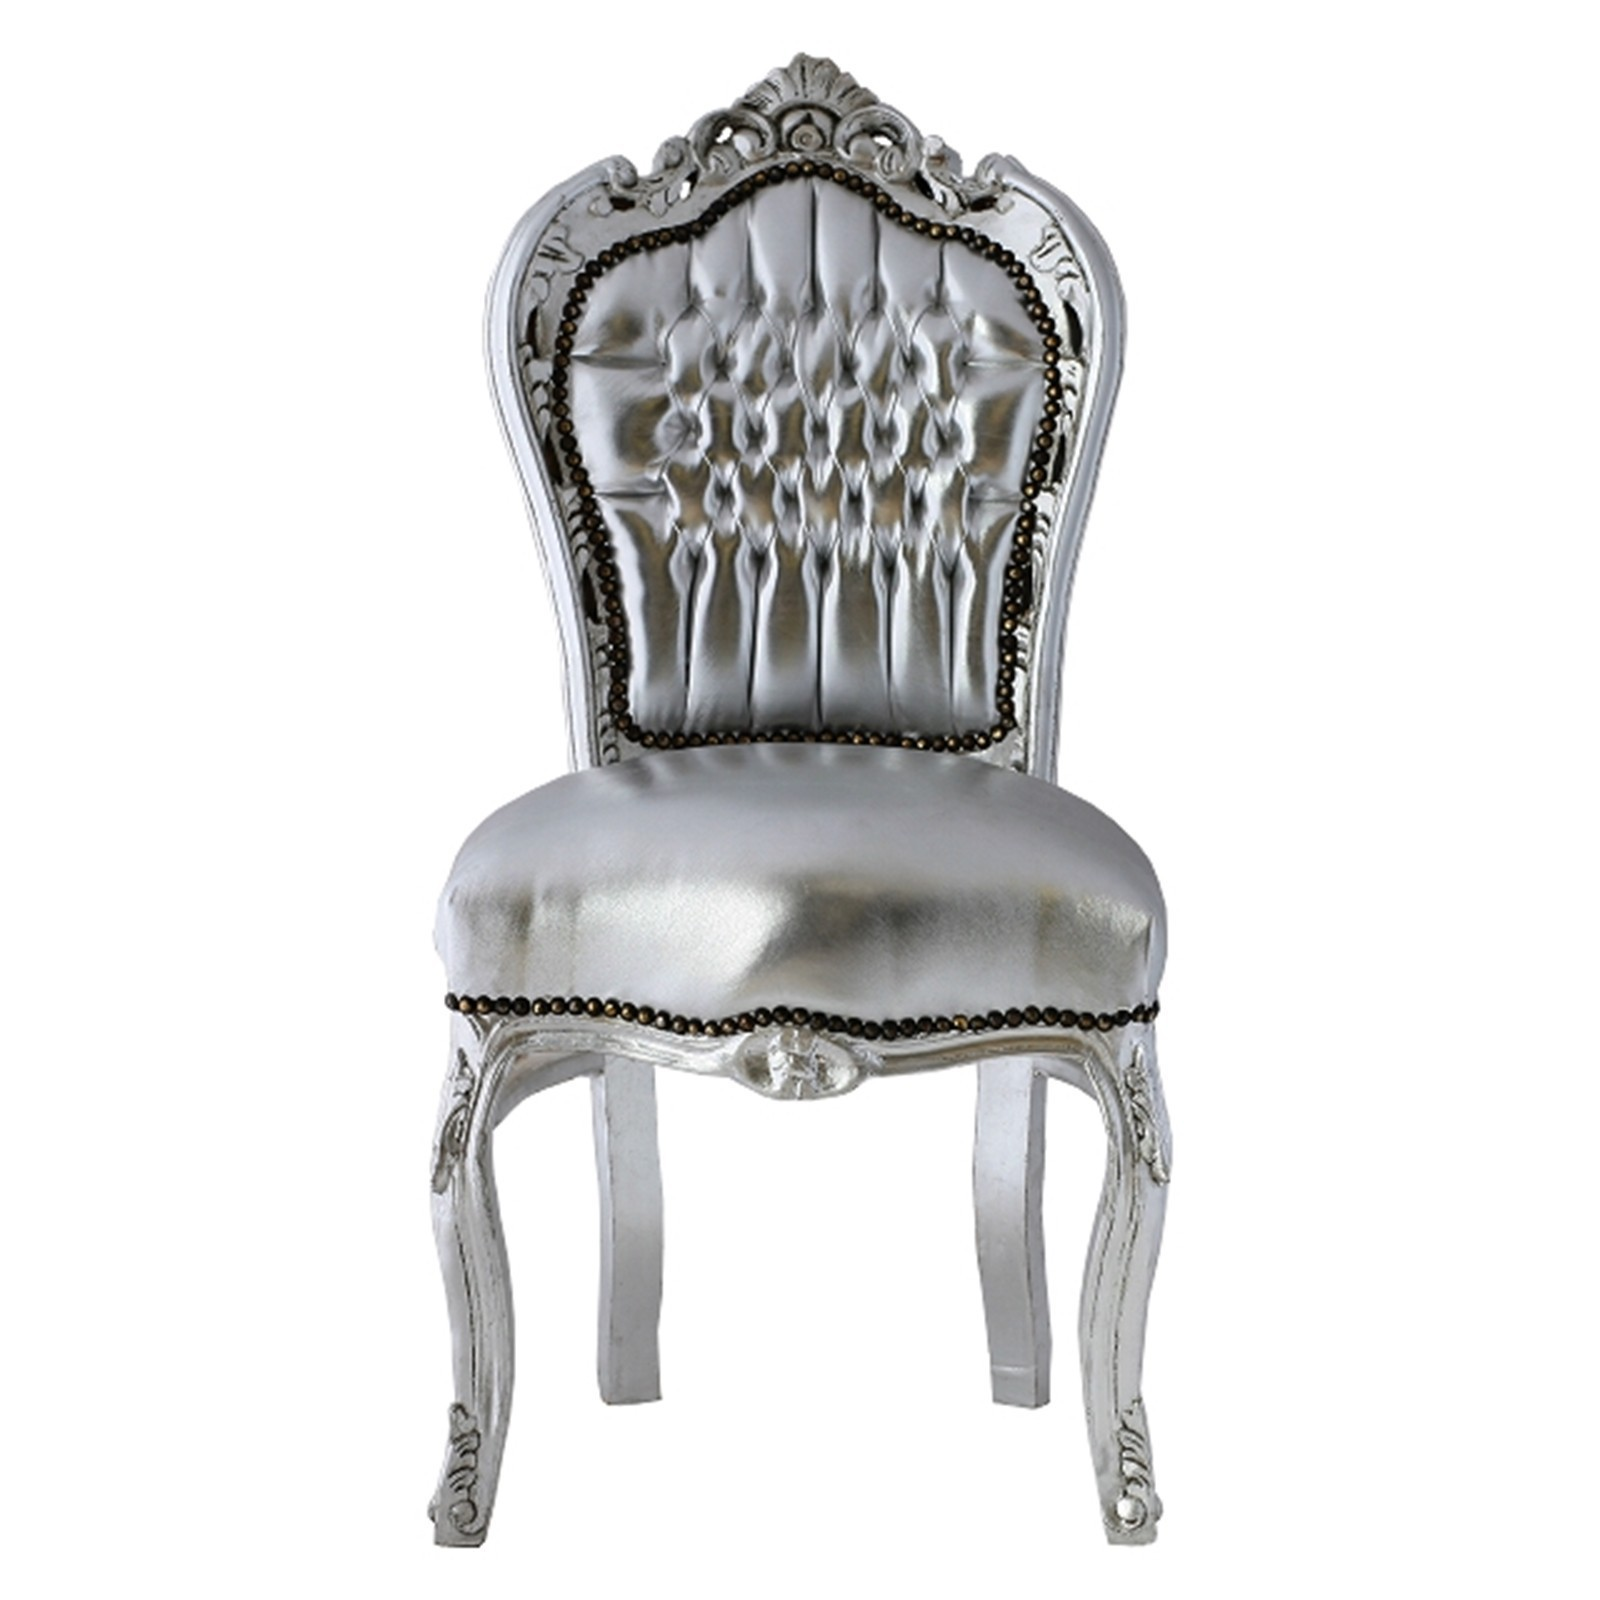 Charmant Synthetic Leather Chair Silver Leafed With Silver French U2013 Bild 1